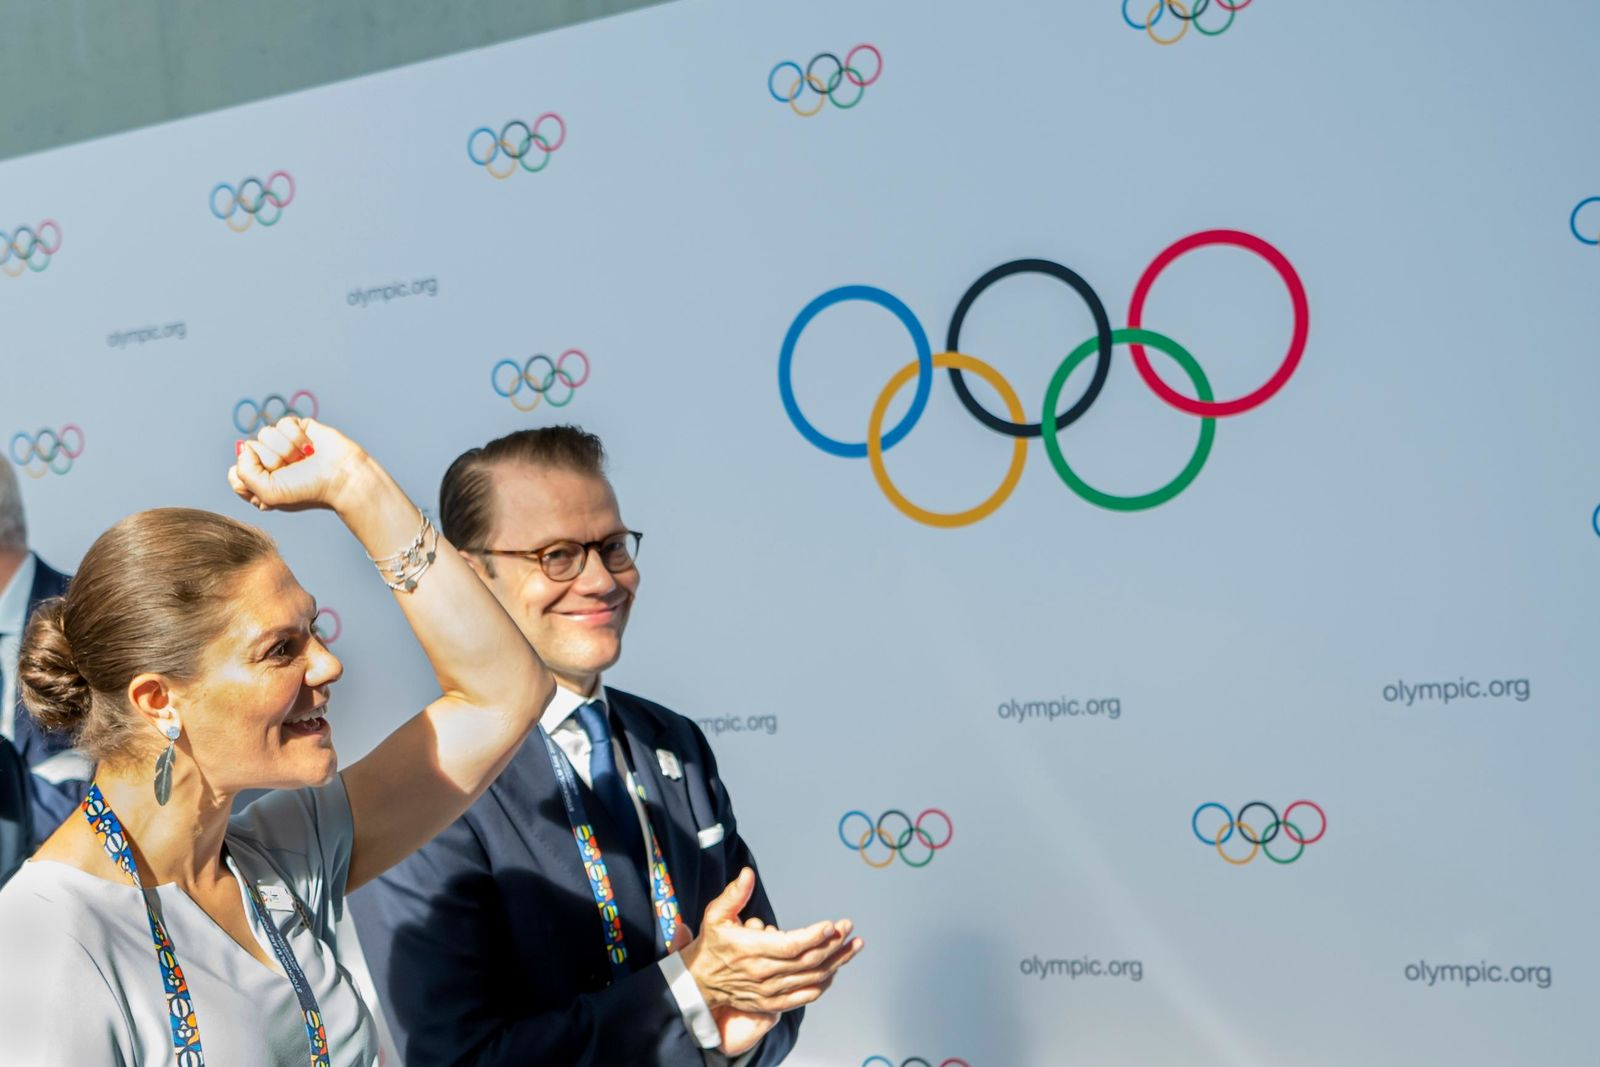 Sweden's Crown Princess Victoria, left, and Prince Daniel, right, react during the first day of the 134th Session of the International Olympic Committee (IOC), at the SwissTech Convention Centre, in Lausanne, Switzerland, Monday, June 24, 2019. (Jean-Christophe Bott)/Keystone via AP)